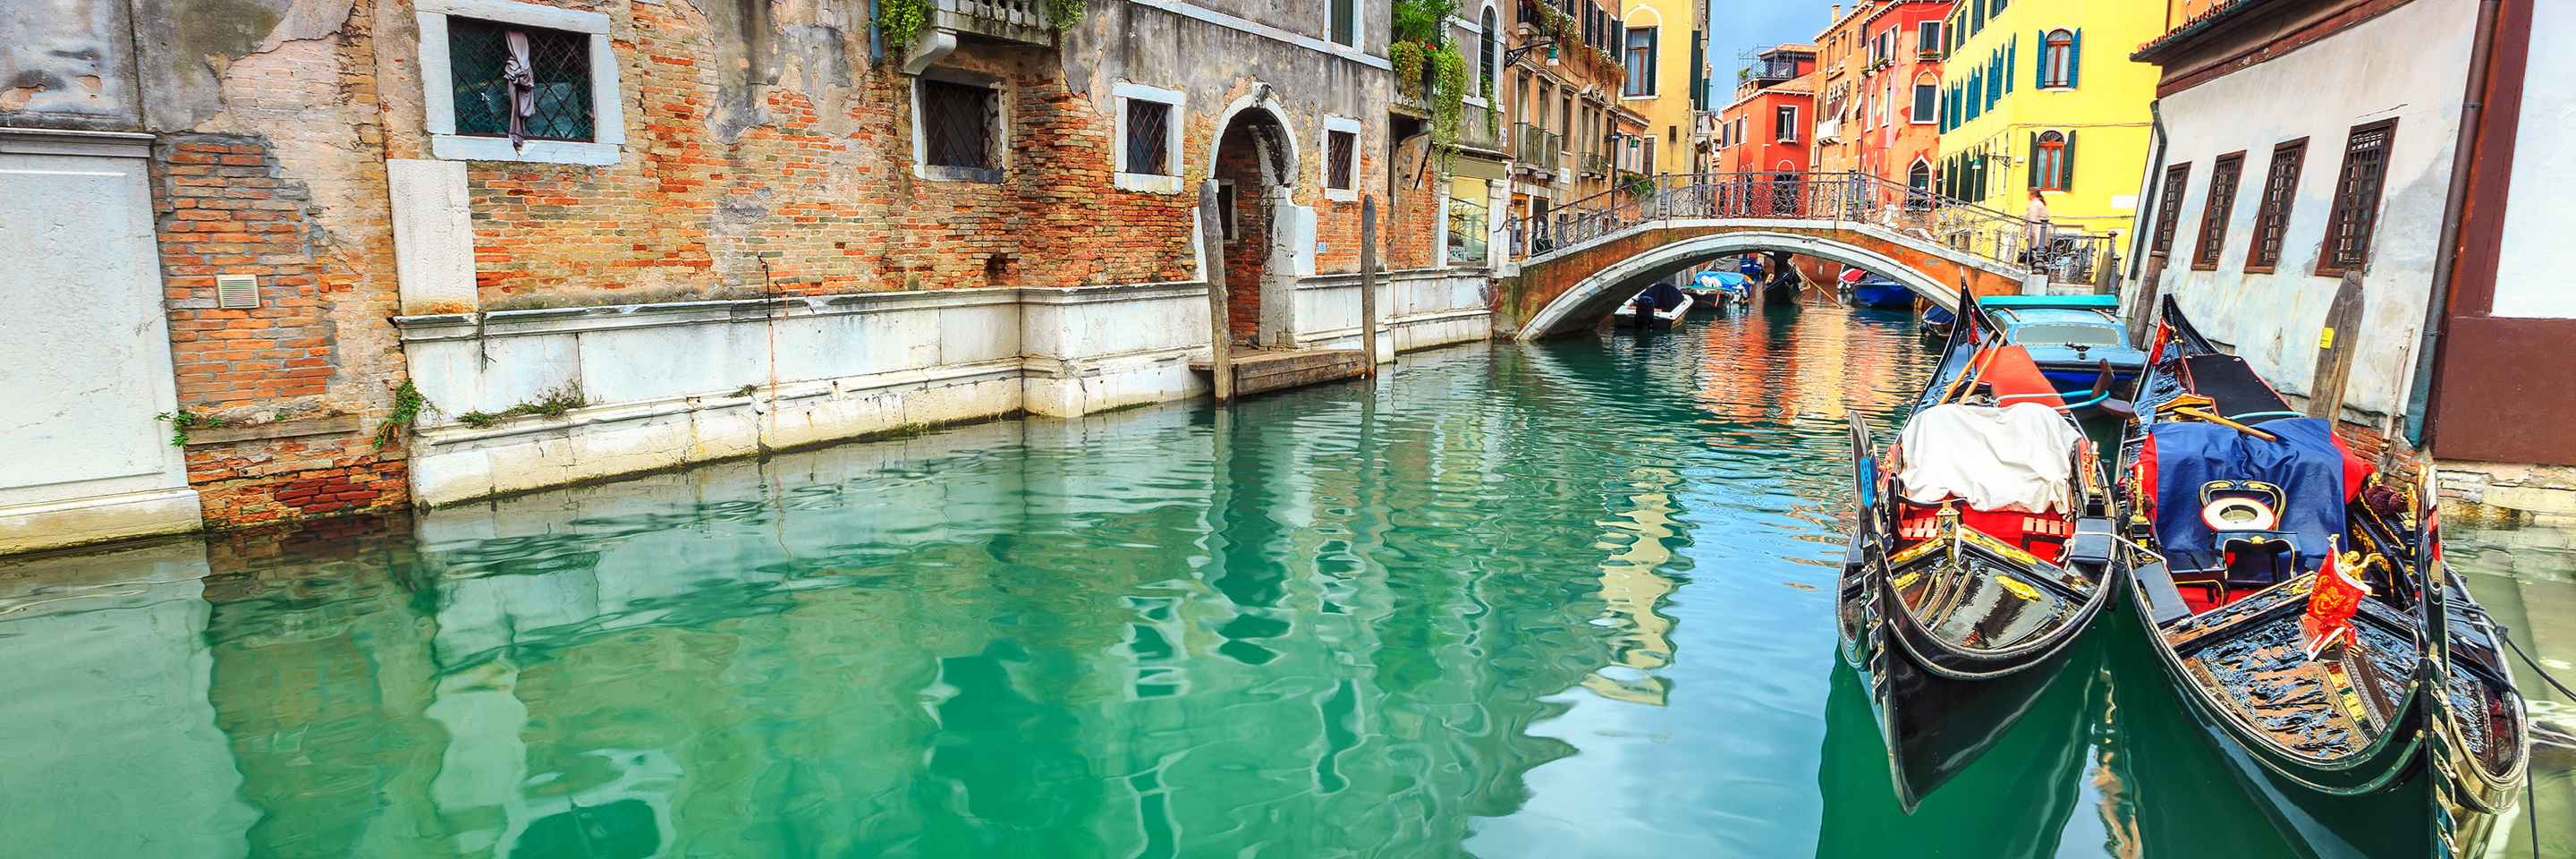 A Culinary Experience in Grand France with 2 Nights in Nice, 3  Nights in Venice & 3 Nights in Rome (Northbound)